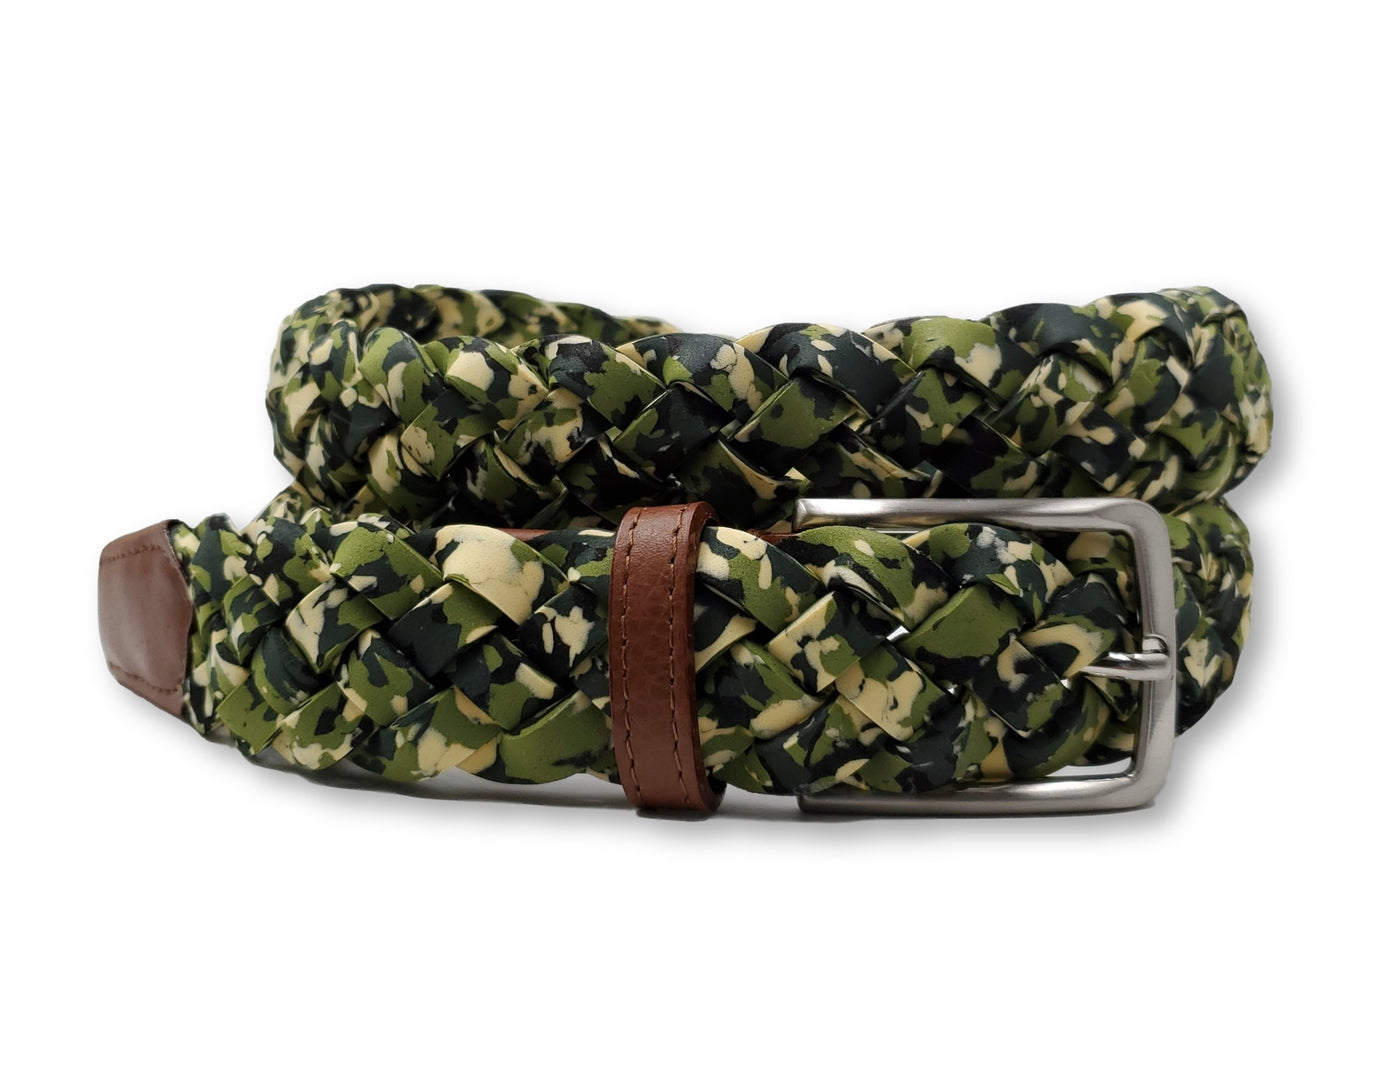 Neoprene Green Camouflage Belt - FH Wadsworth